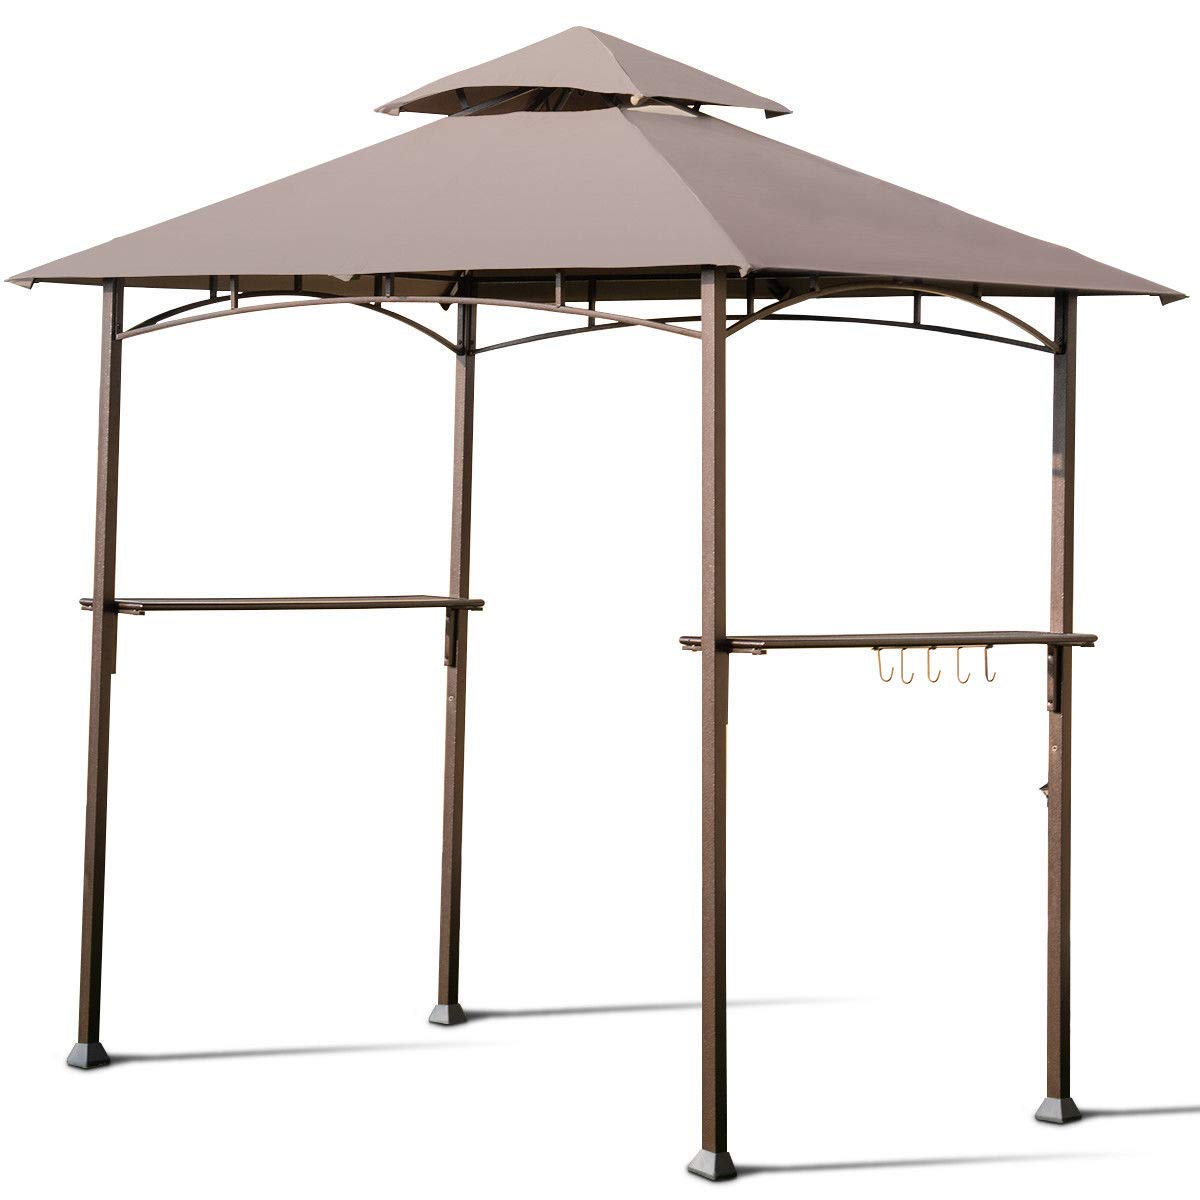 FDInspiration Khaki BBQ Grill Shelter Gazebo Barbecue Canopy Tent 2-Tier Top Cover w/Built-in Bottle Opener with Ebook